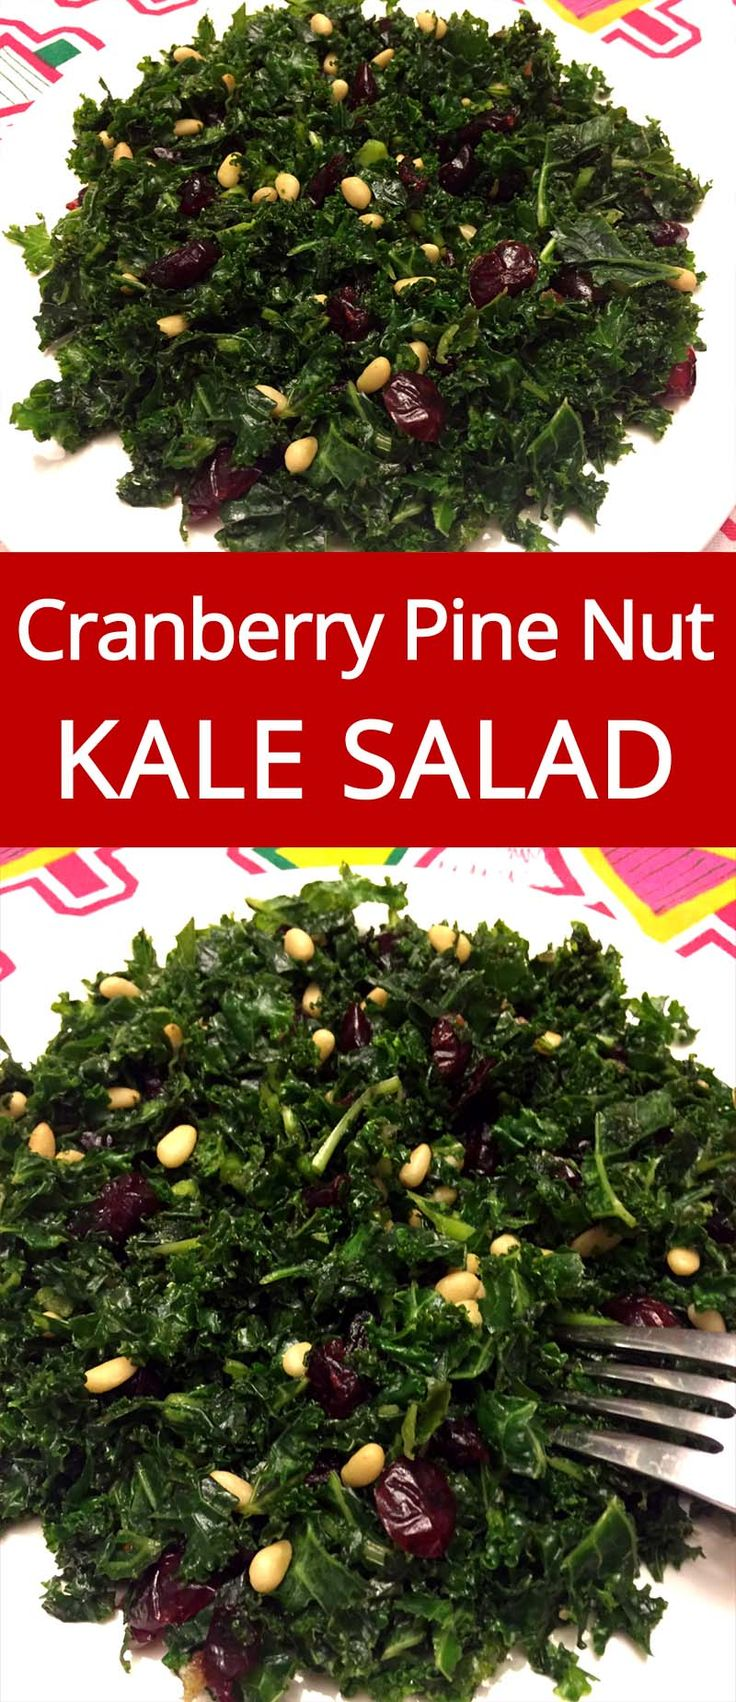 Kale Salad Recipe With Cranberries And Pine Nuts - what a great way to eat more kale! Easy, healthy and yummy! | MelanieCooks.com